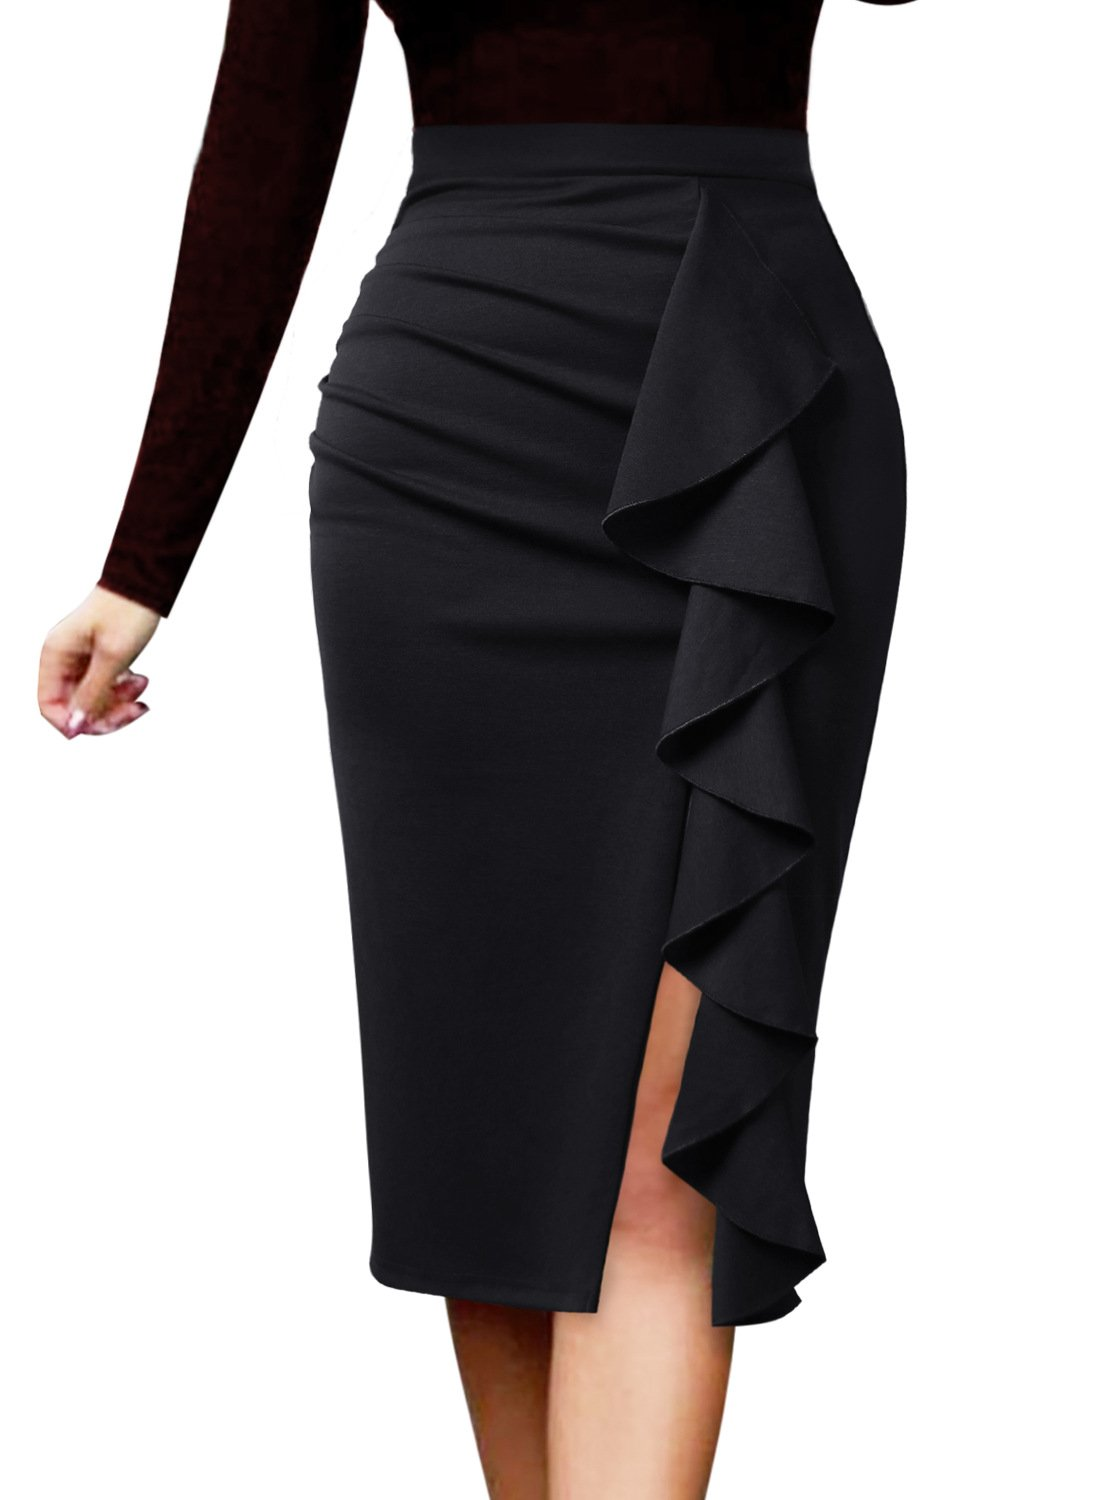 VFSHOW Women Elegant Ruched Ruffle Slit Work Business Party Pencil Skirt 1007 BLK XXL